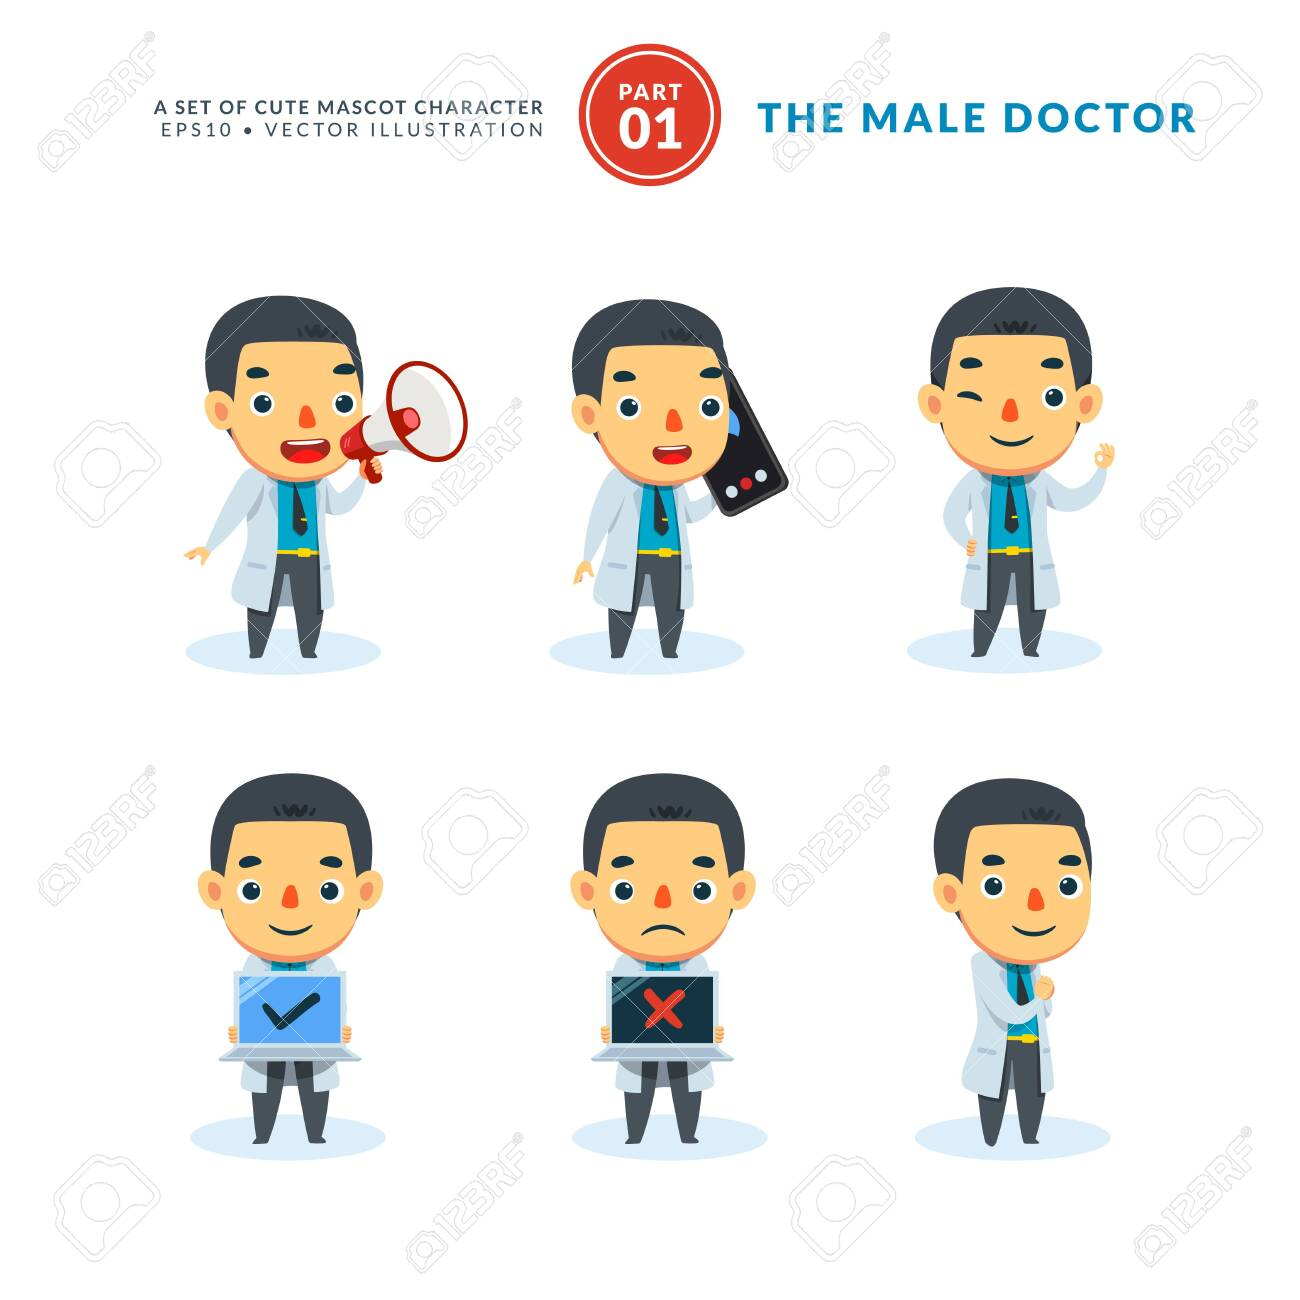 Vector set of cartoon images of Male Doctor. First Set. Isolated Vector Illustration - 149747061